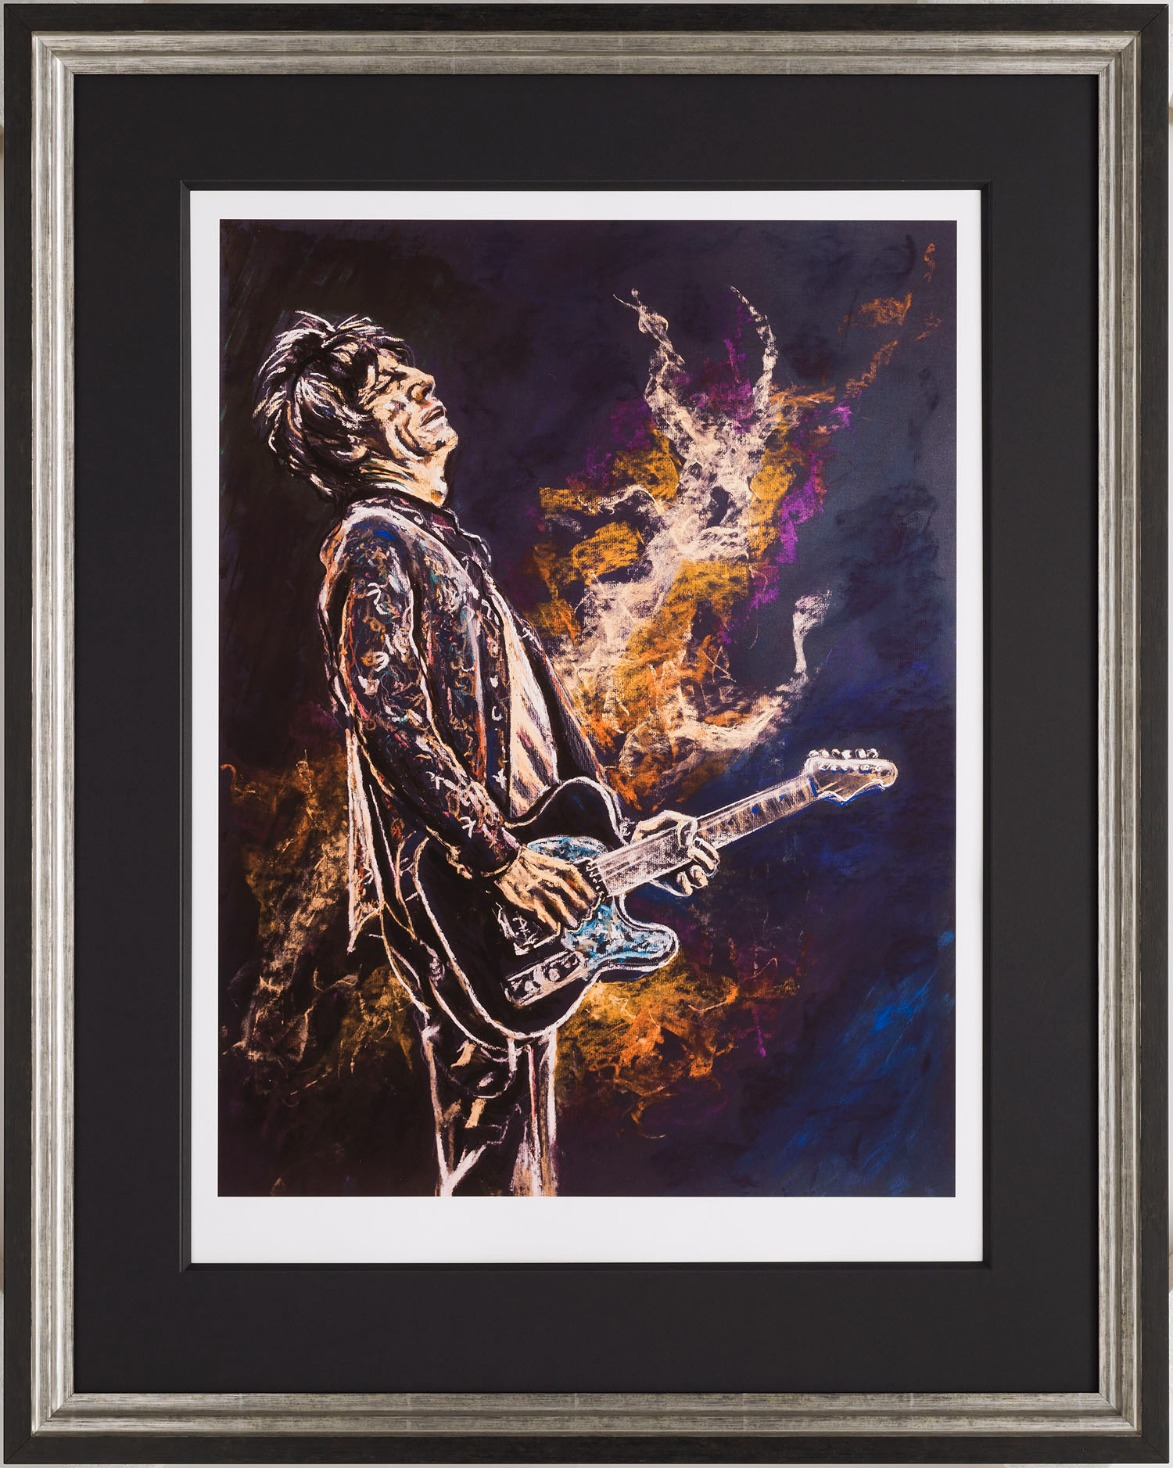 Self Portrait II (Mick, Keith, Charlie & Ronnie) by Ronnie Wood, Music | Pop | Book